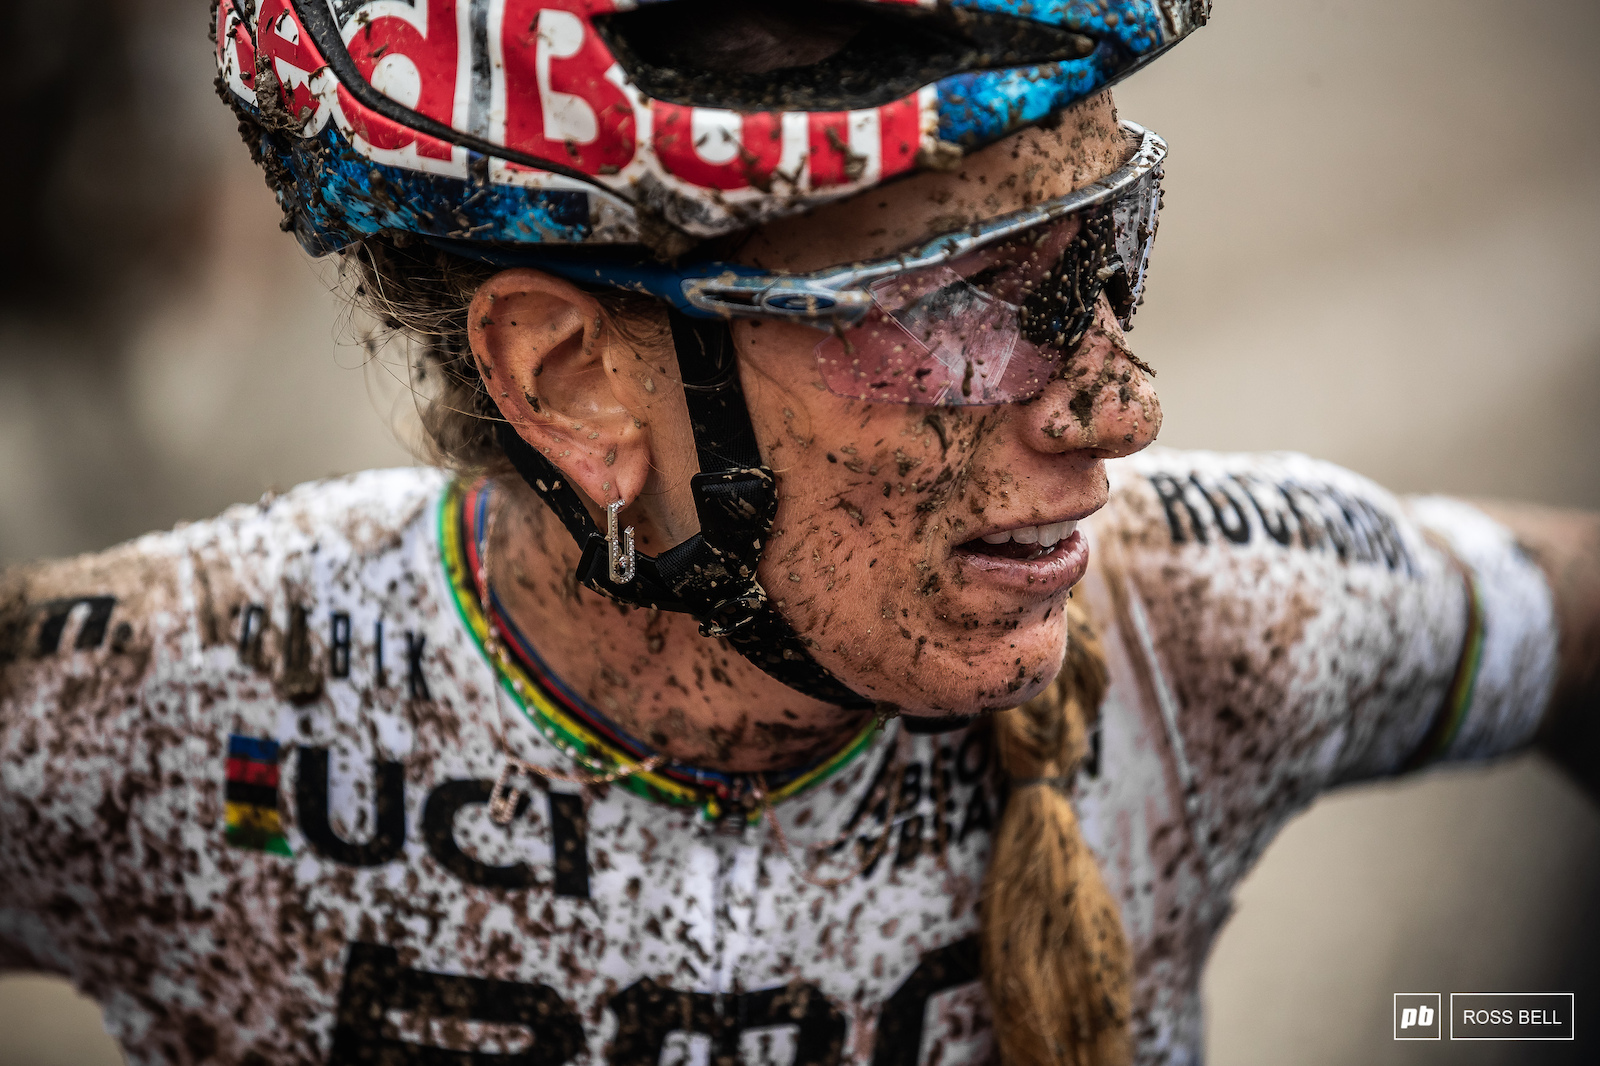 A tough battle out there today for Pauline Ferrand Prevot. She was rewarded with fourth for her efforts.